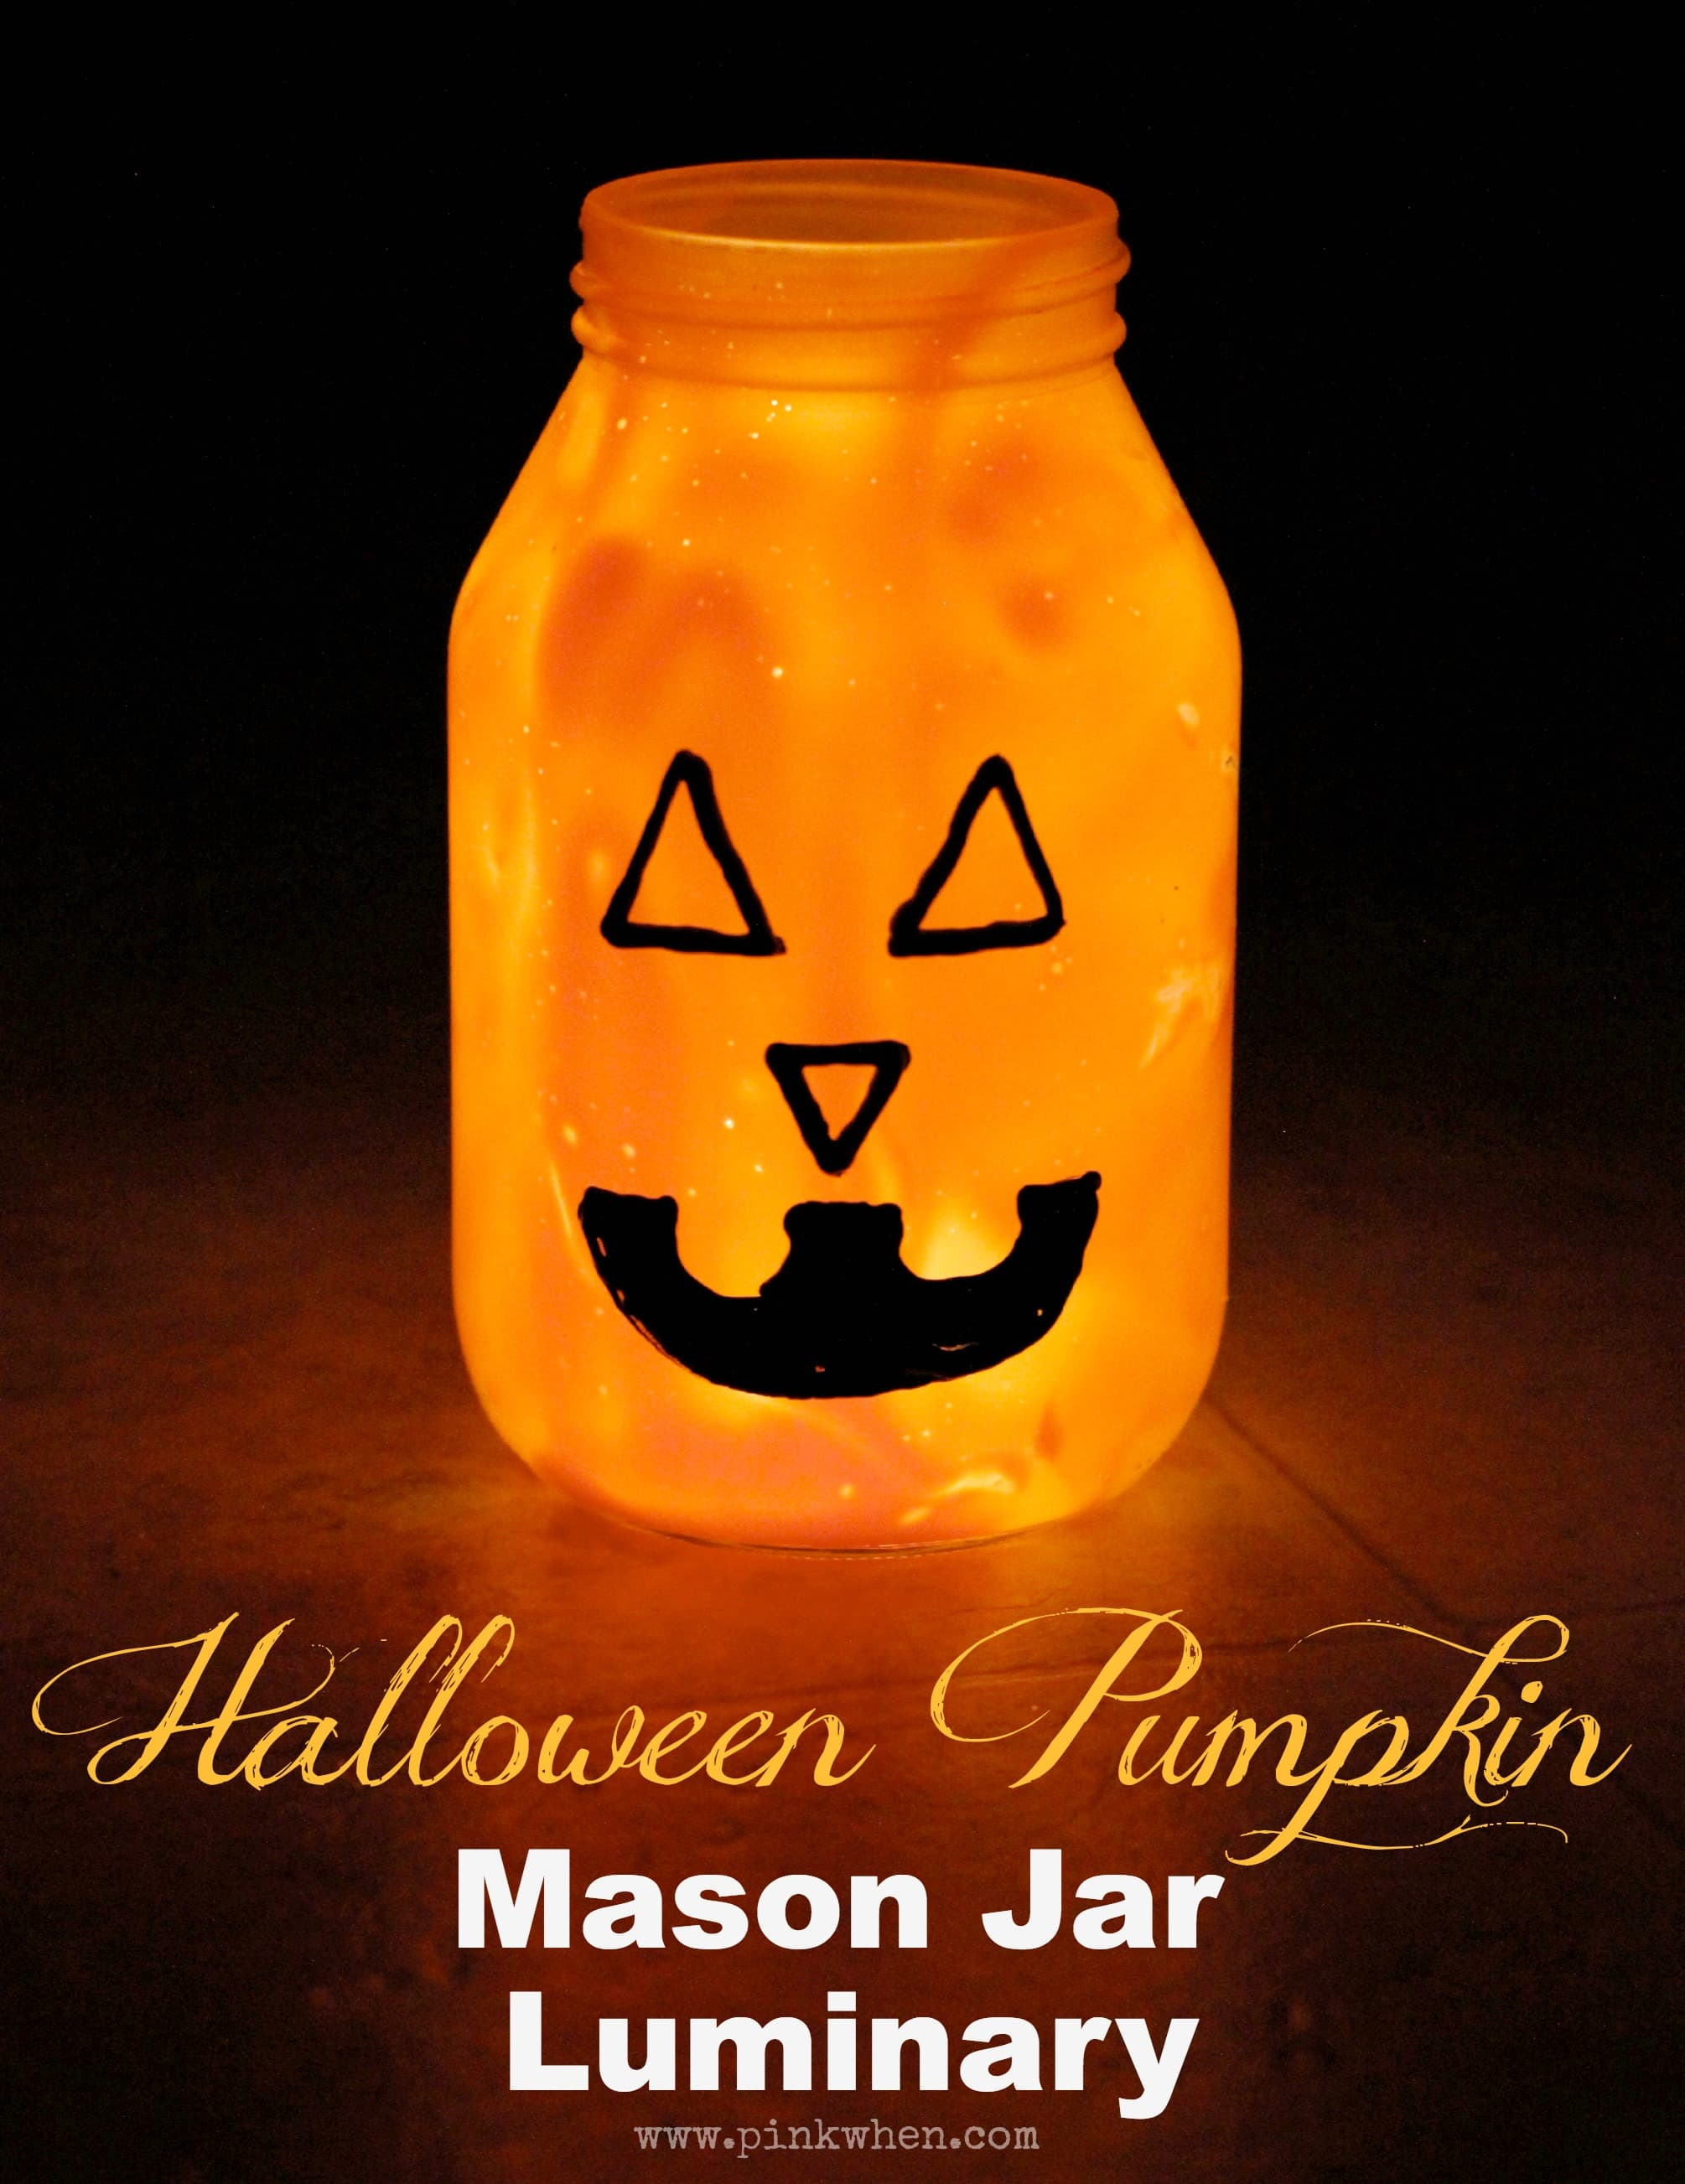 Halloween Pumpkin Mason Jar Luminary